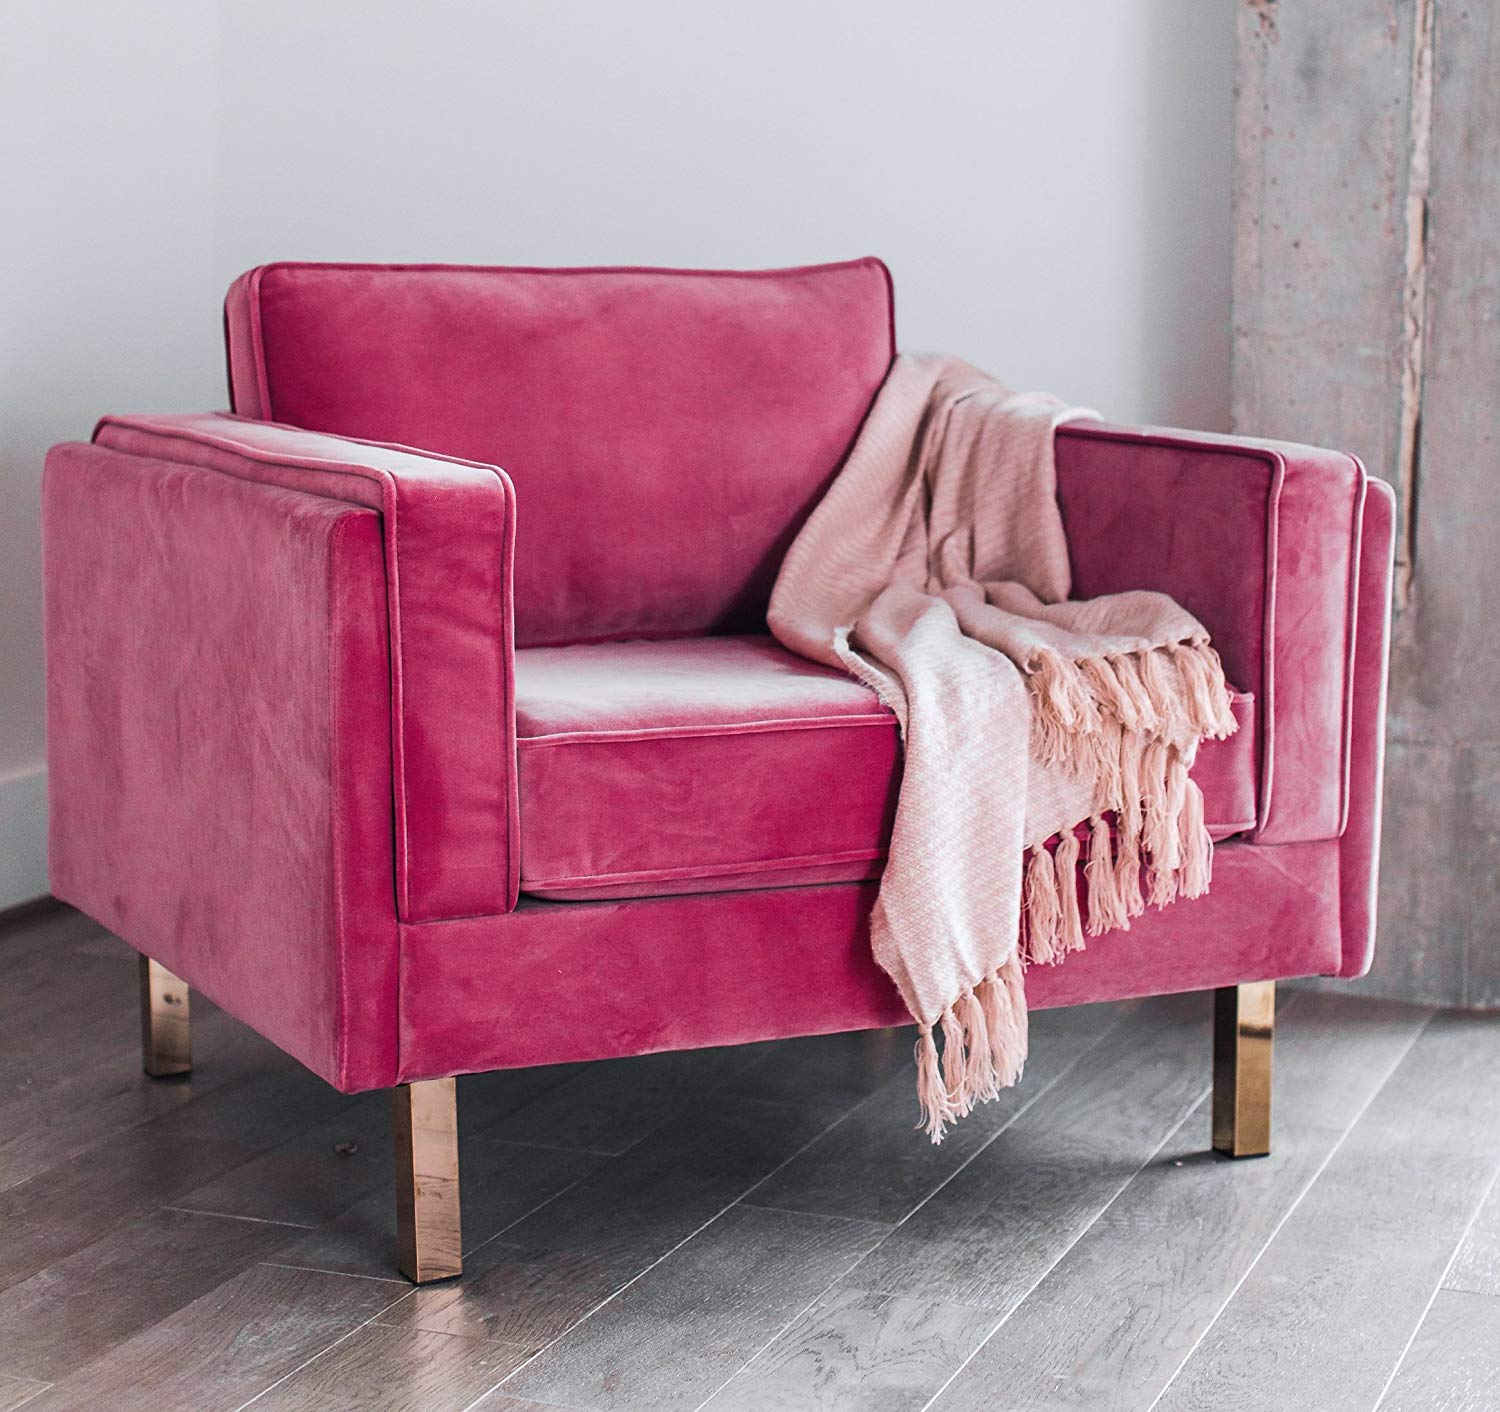 Buy Edloe Finch Lovette Pink Accent Chair Modern Velvet Accent Chair For Living Room In Cheap Price On Alibaba Com